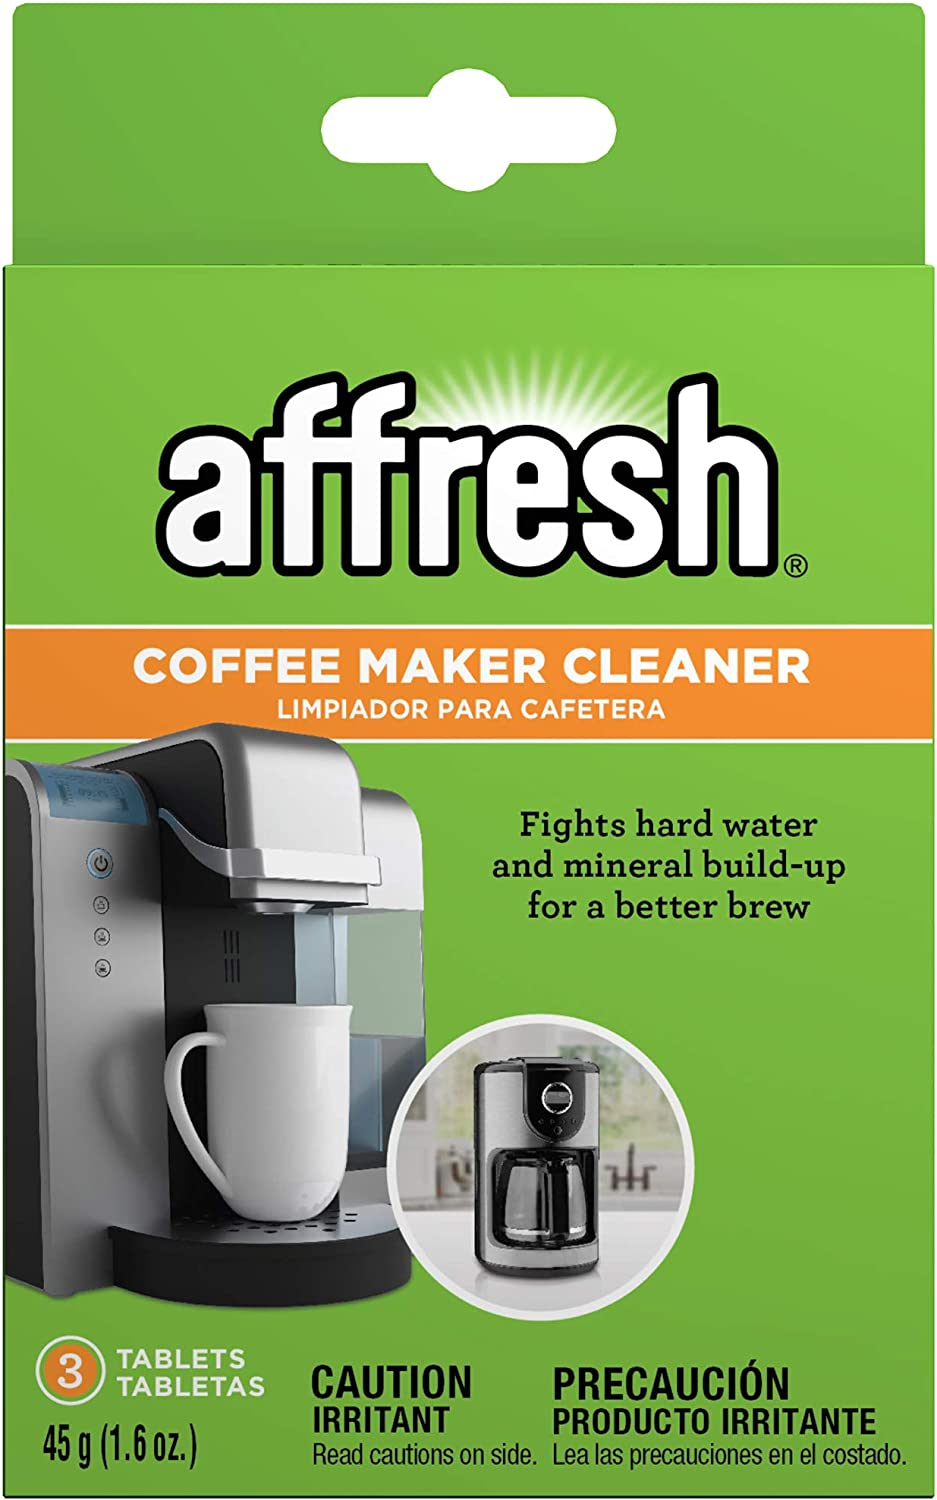 Affresh W10355052 San Antonio Mall Coffee Maker Cleaner Compatible Max 72% OFF Tablets 3 w